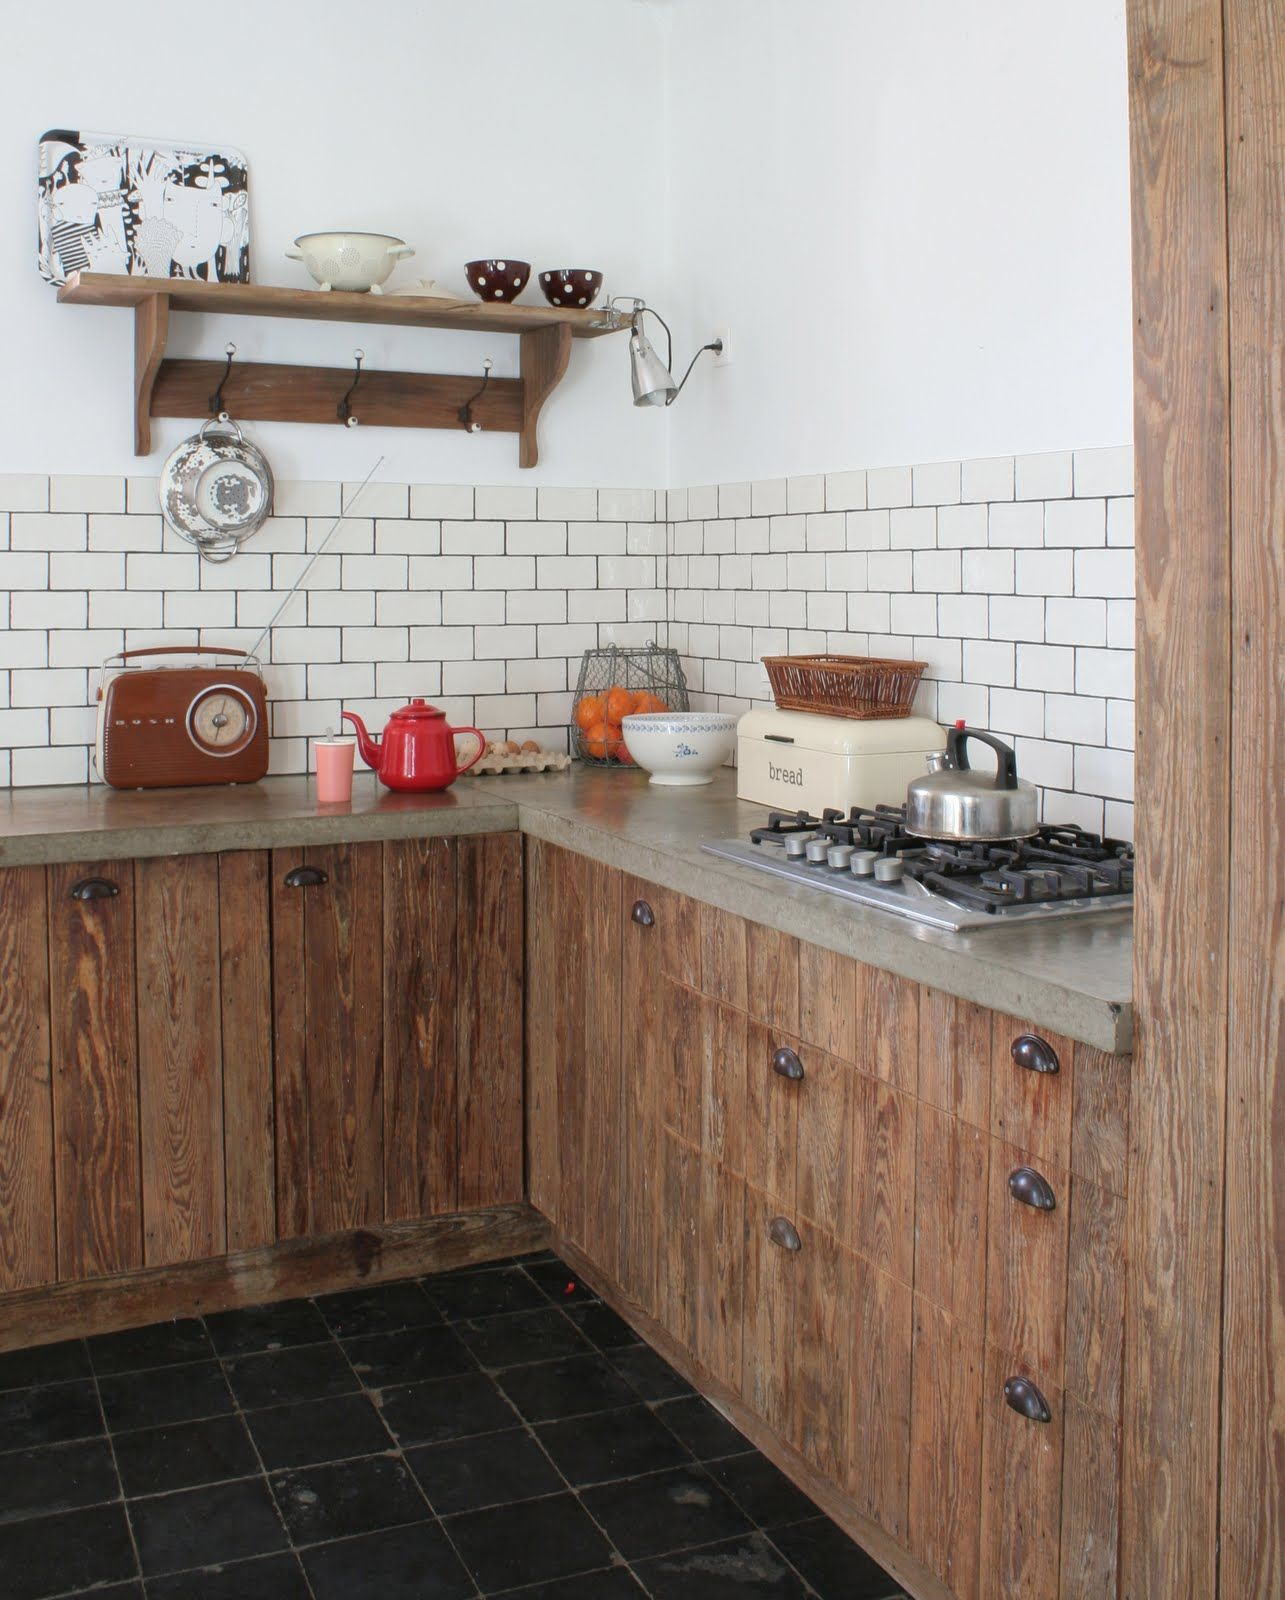 Reclaimed Wood Cabinets And Subway Tile Backsplash